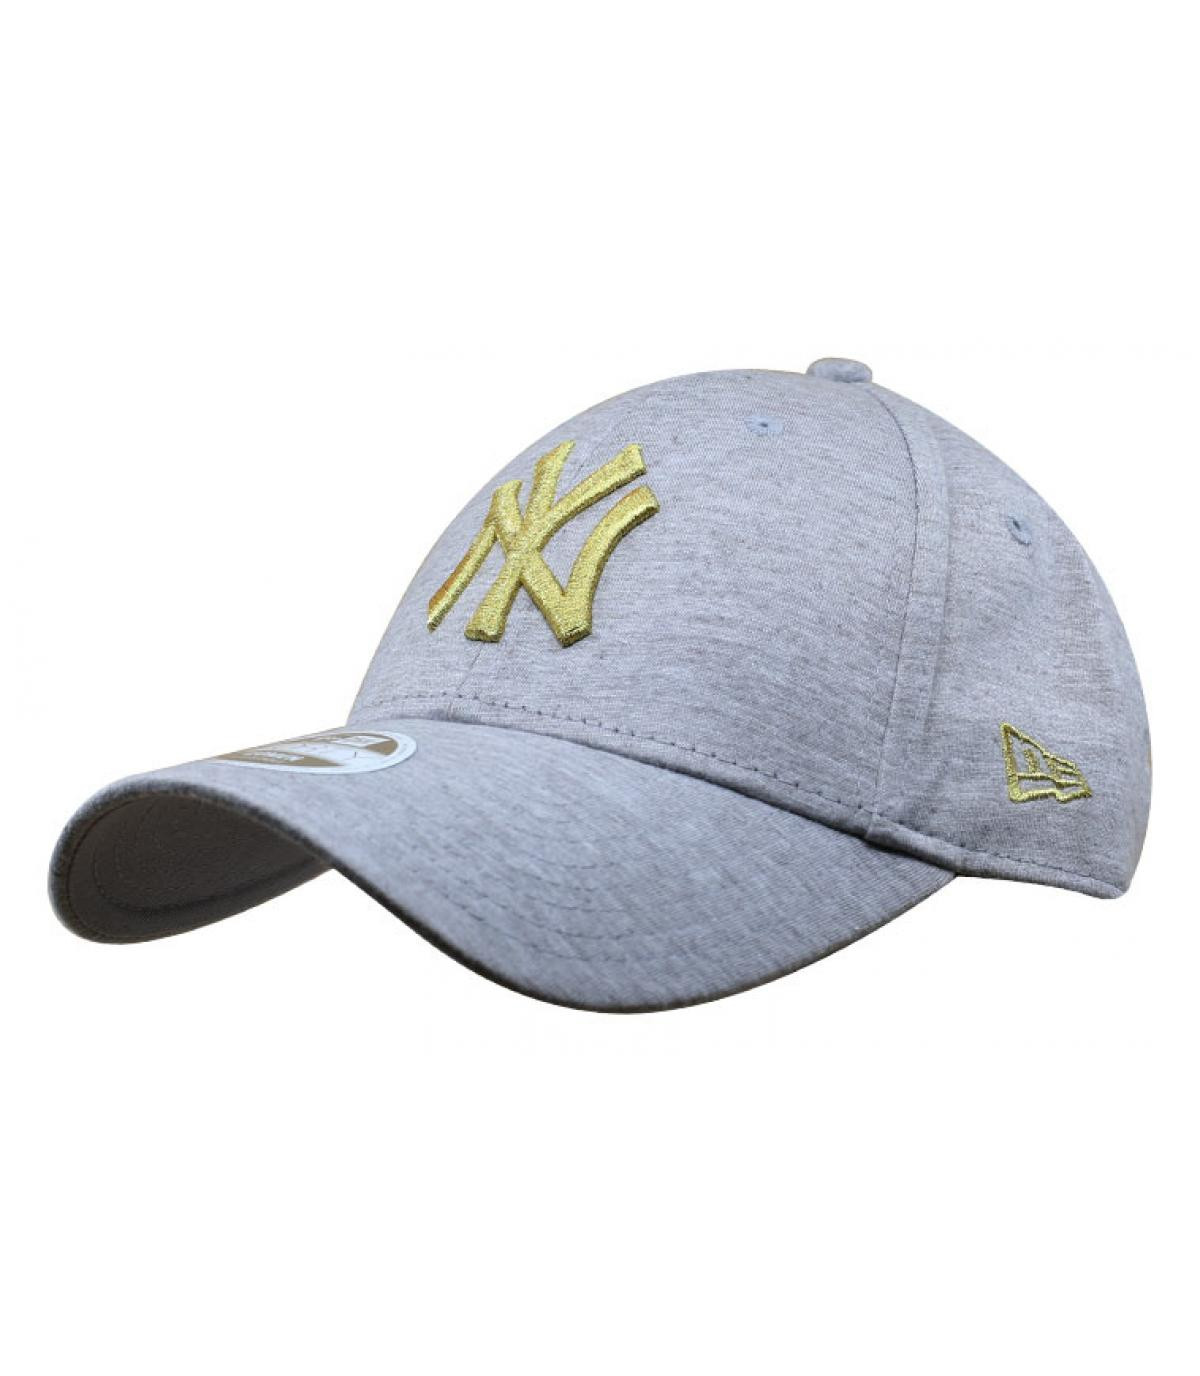 Détails Casquette Wmn Jersey NY 940 gray gold - image 2